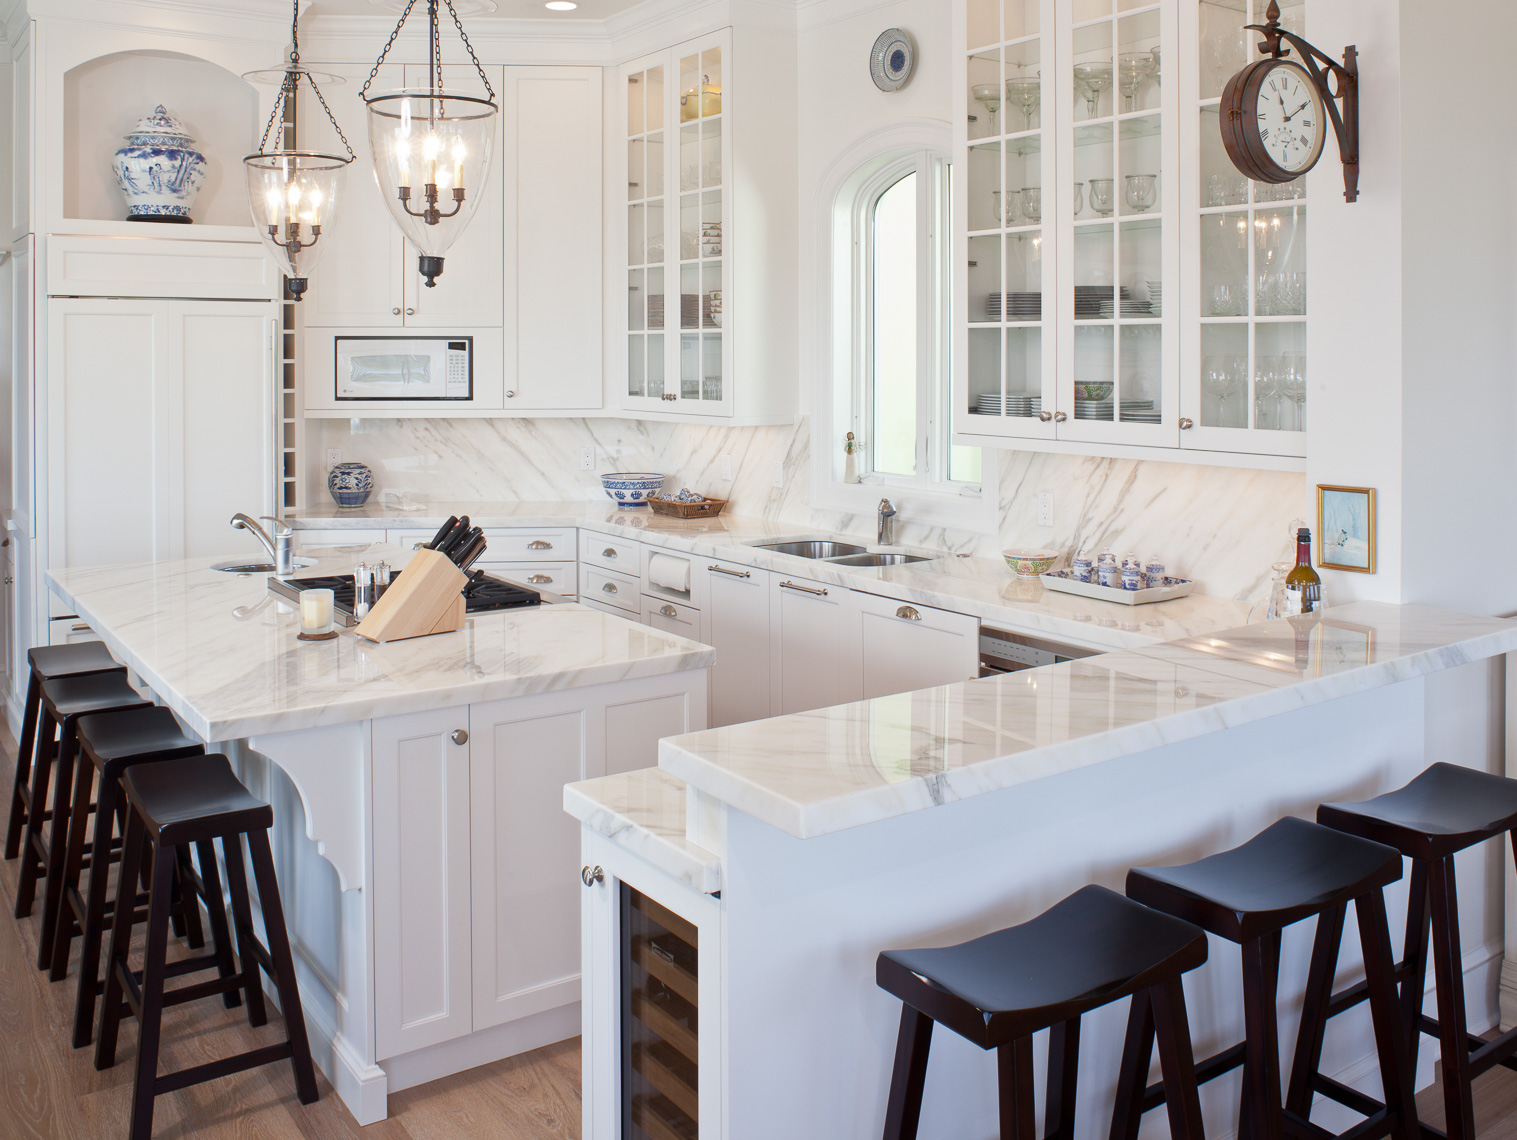 Contemporary Kitchen - Mark Borosch Photography - Longboat Key, FL